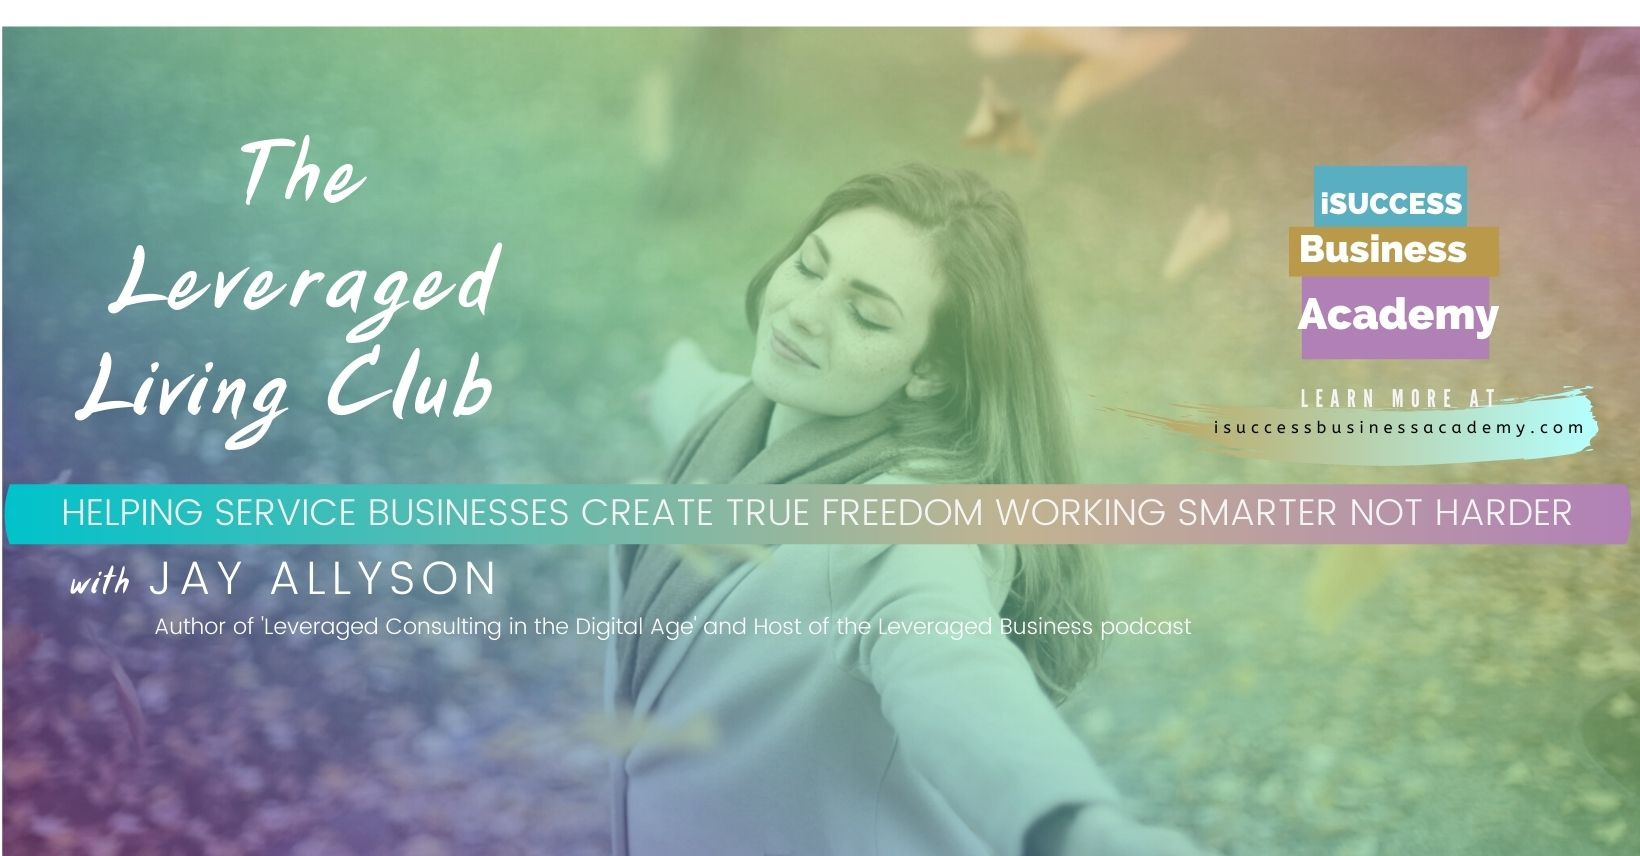 the leveraged living club facebook group